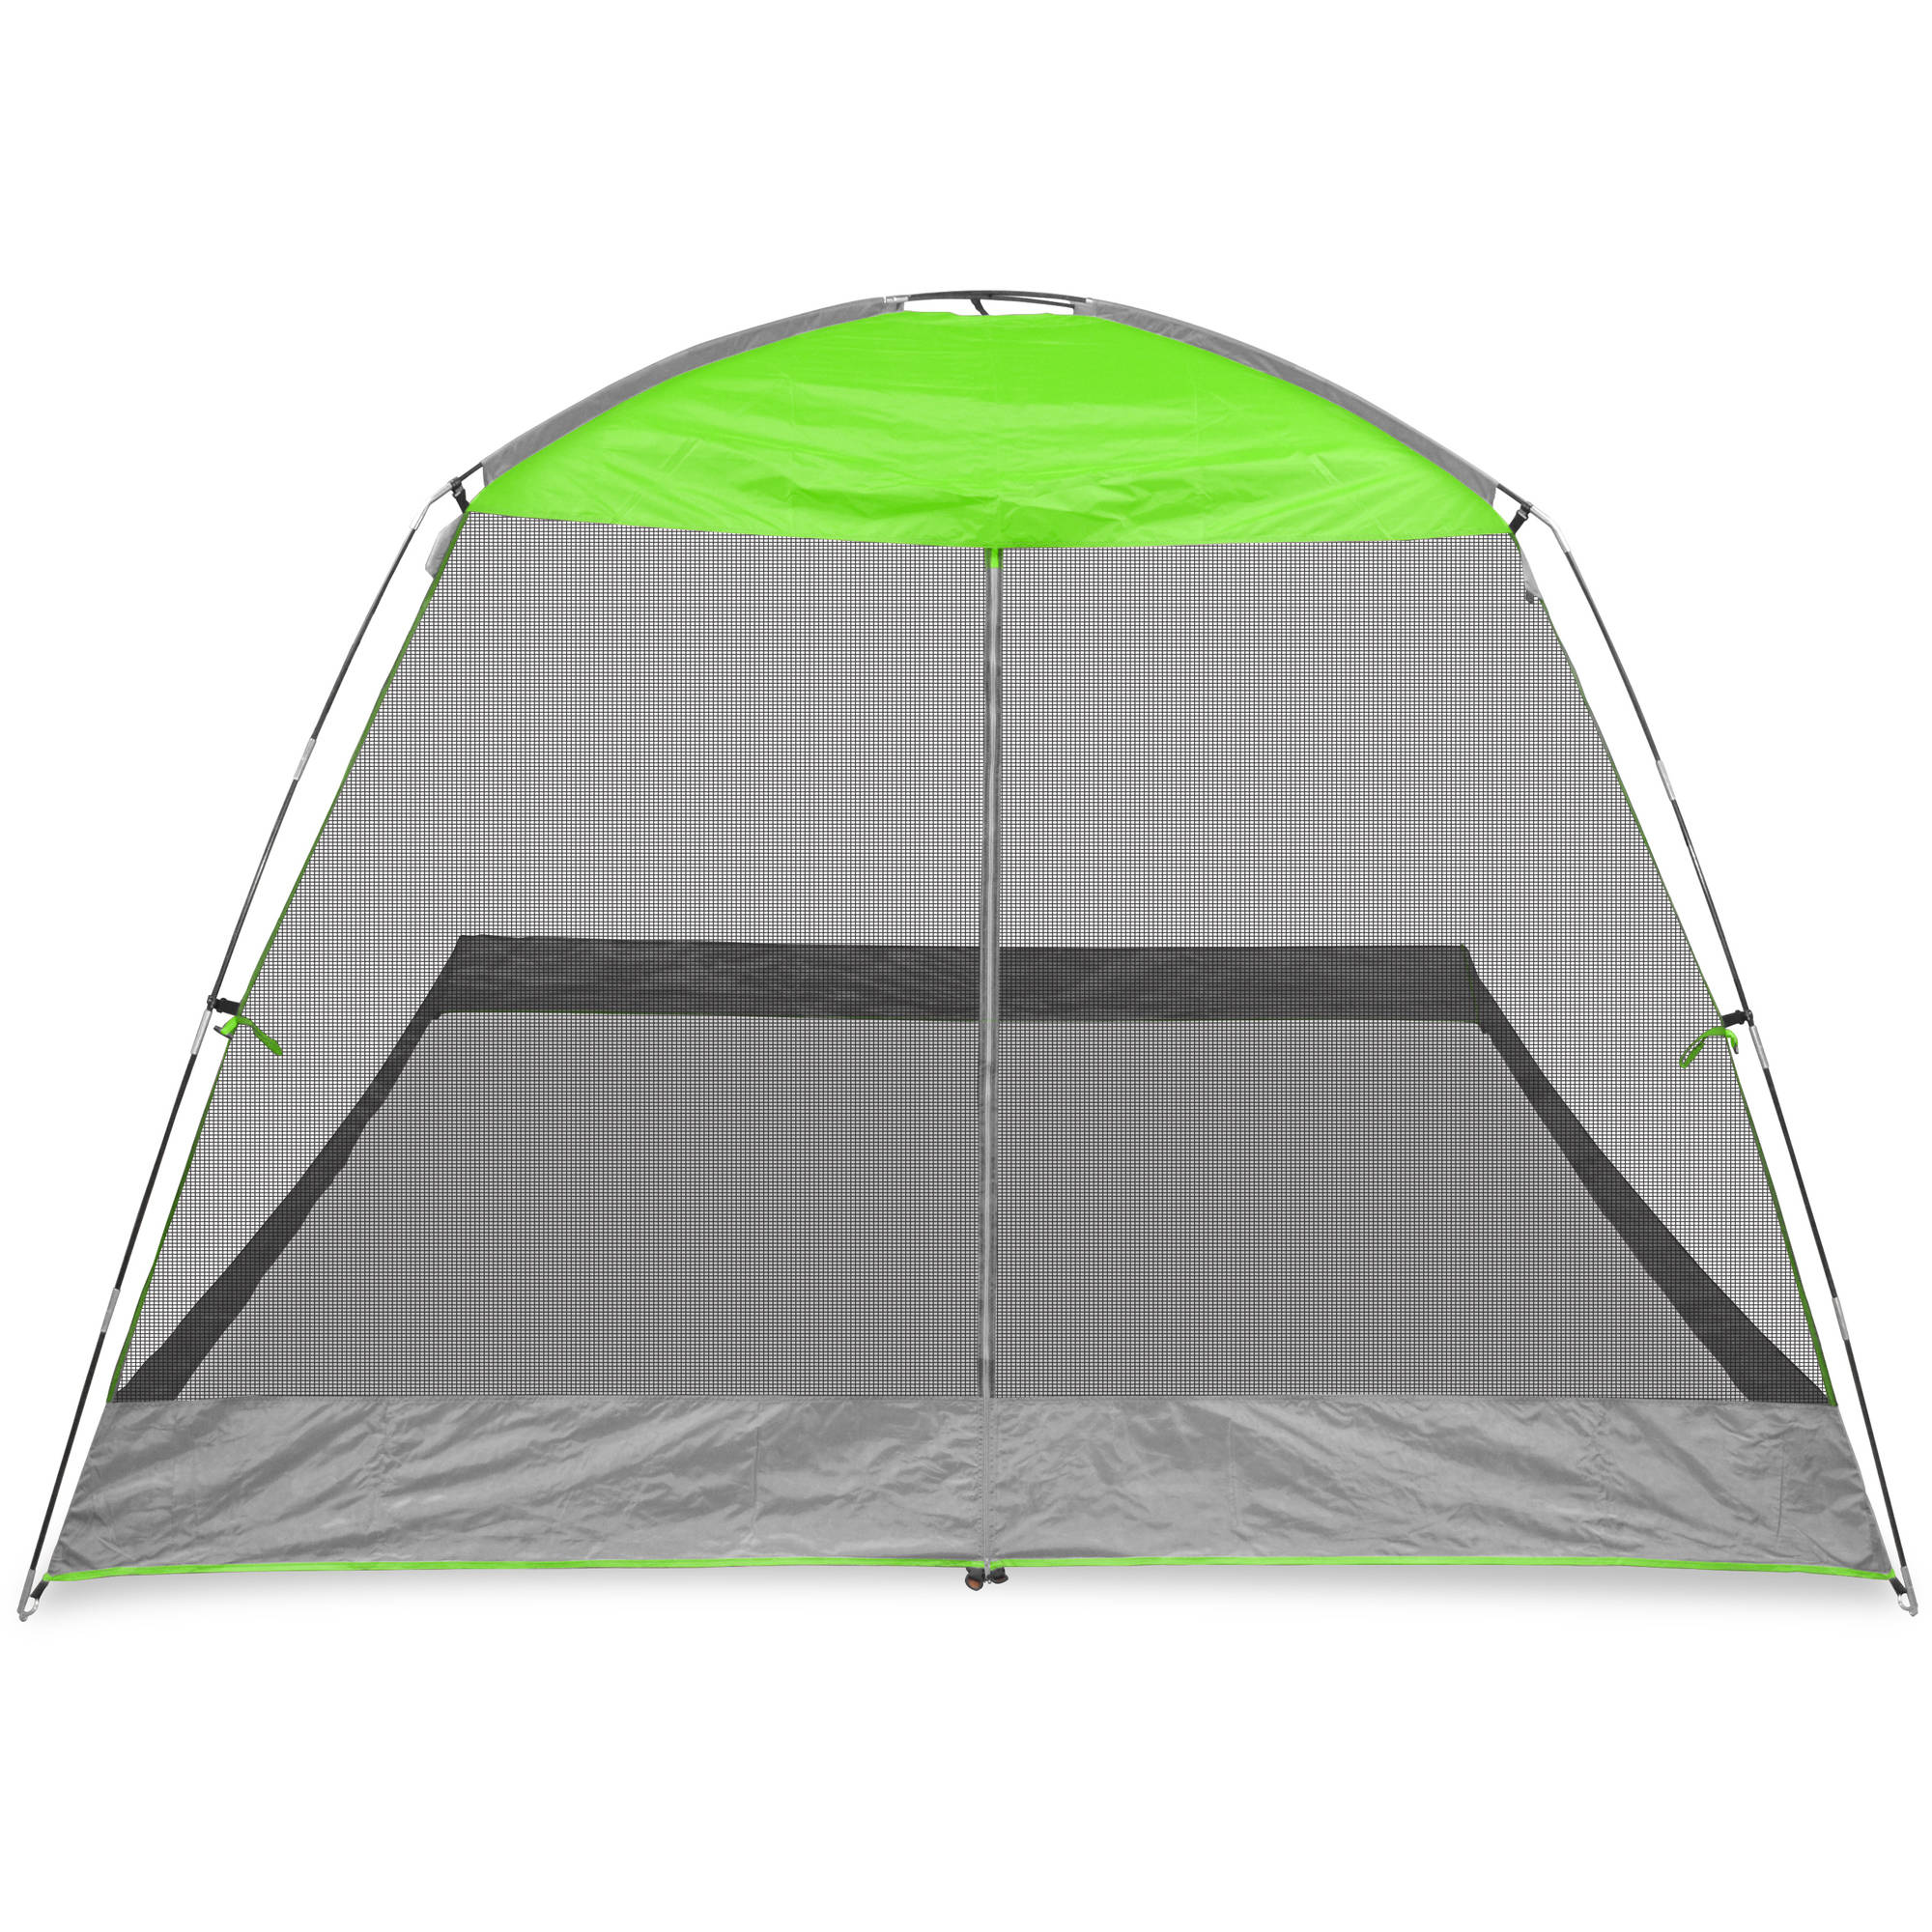 Caravan Canopy Sports 10u0027 x 10u0027 Screen House Shelter Lime Green (33 sq ft Coverage)  sc 1 st  AAA Discounts and Rewards & AAA Discounts and Rewards